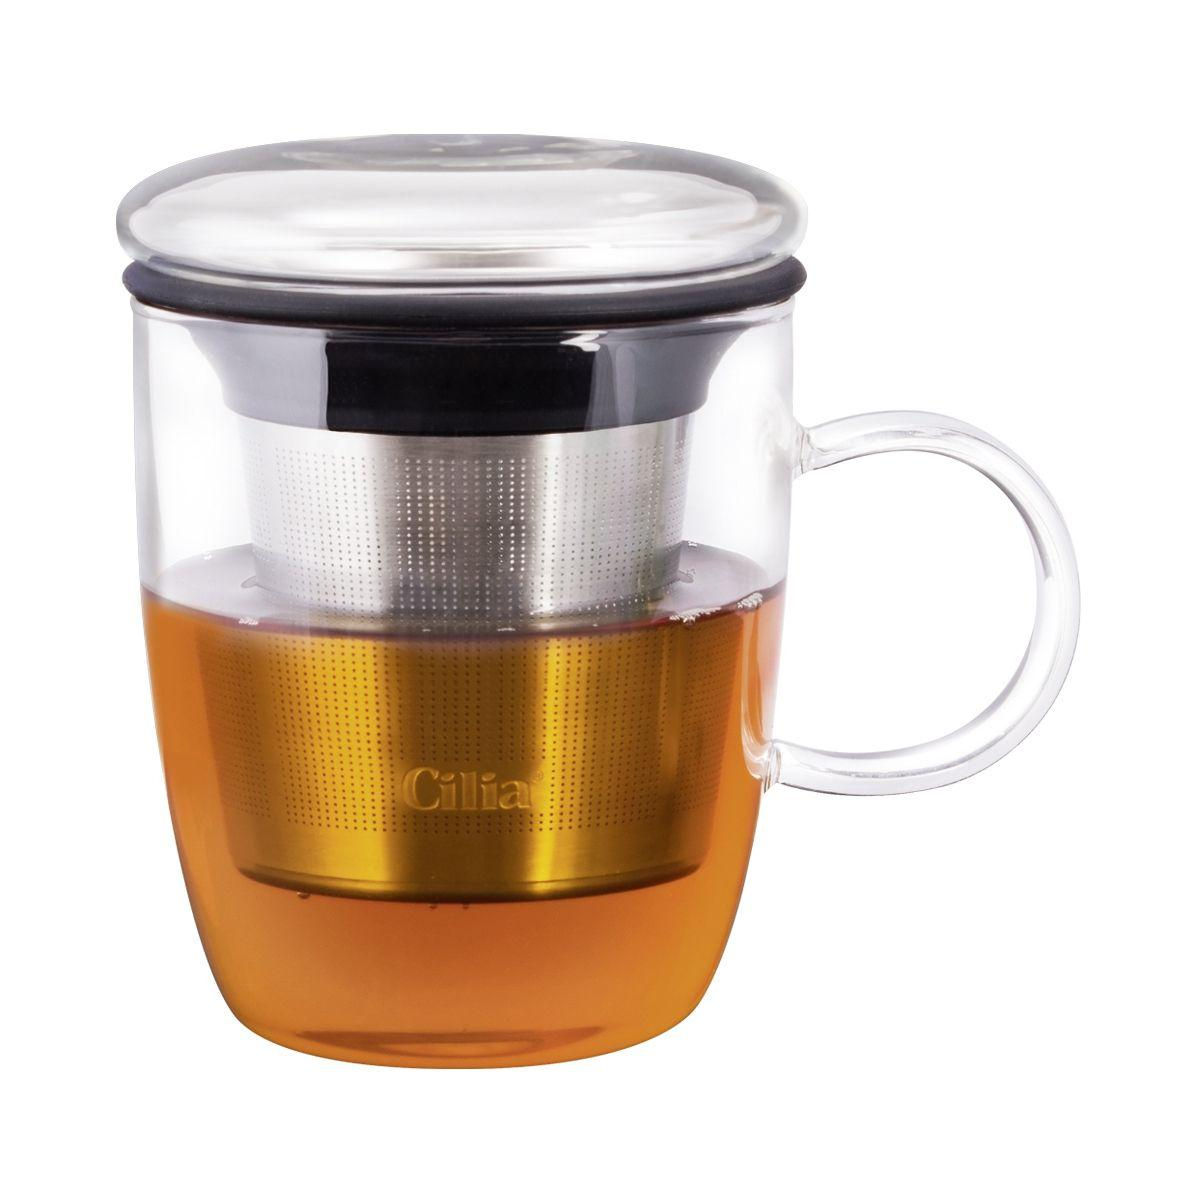 Mug infuseur � th� melitta infuseur � th� cilia (photo)